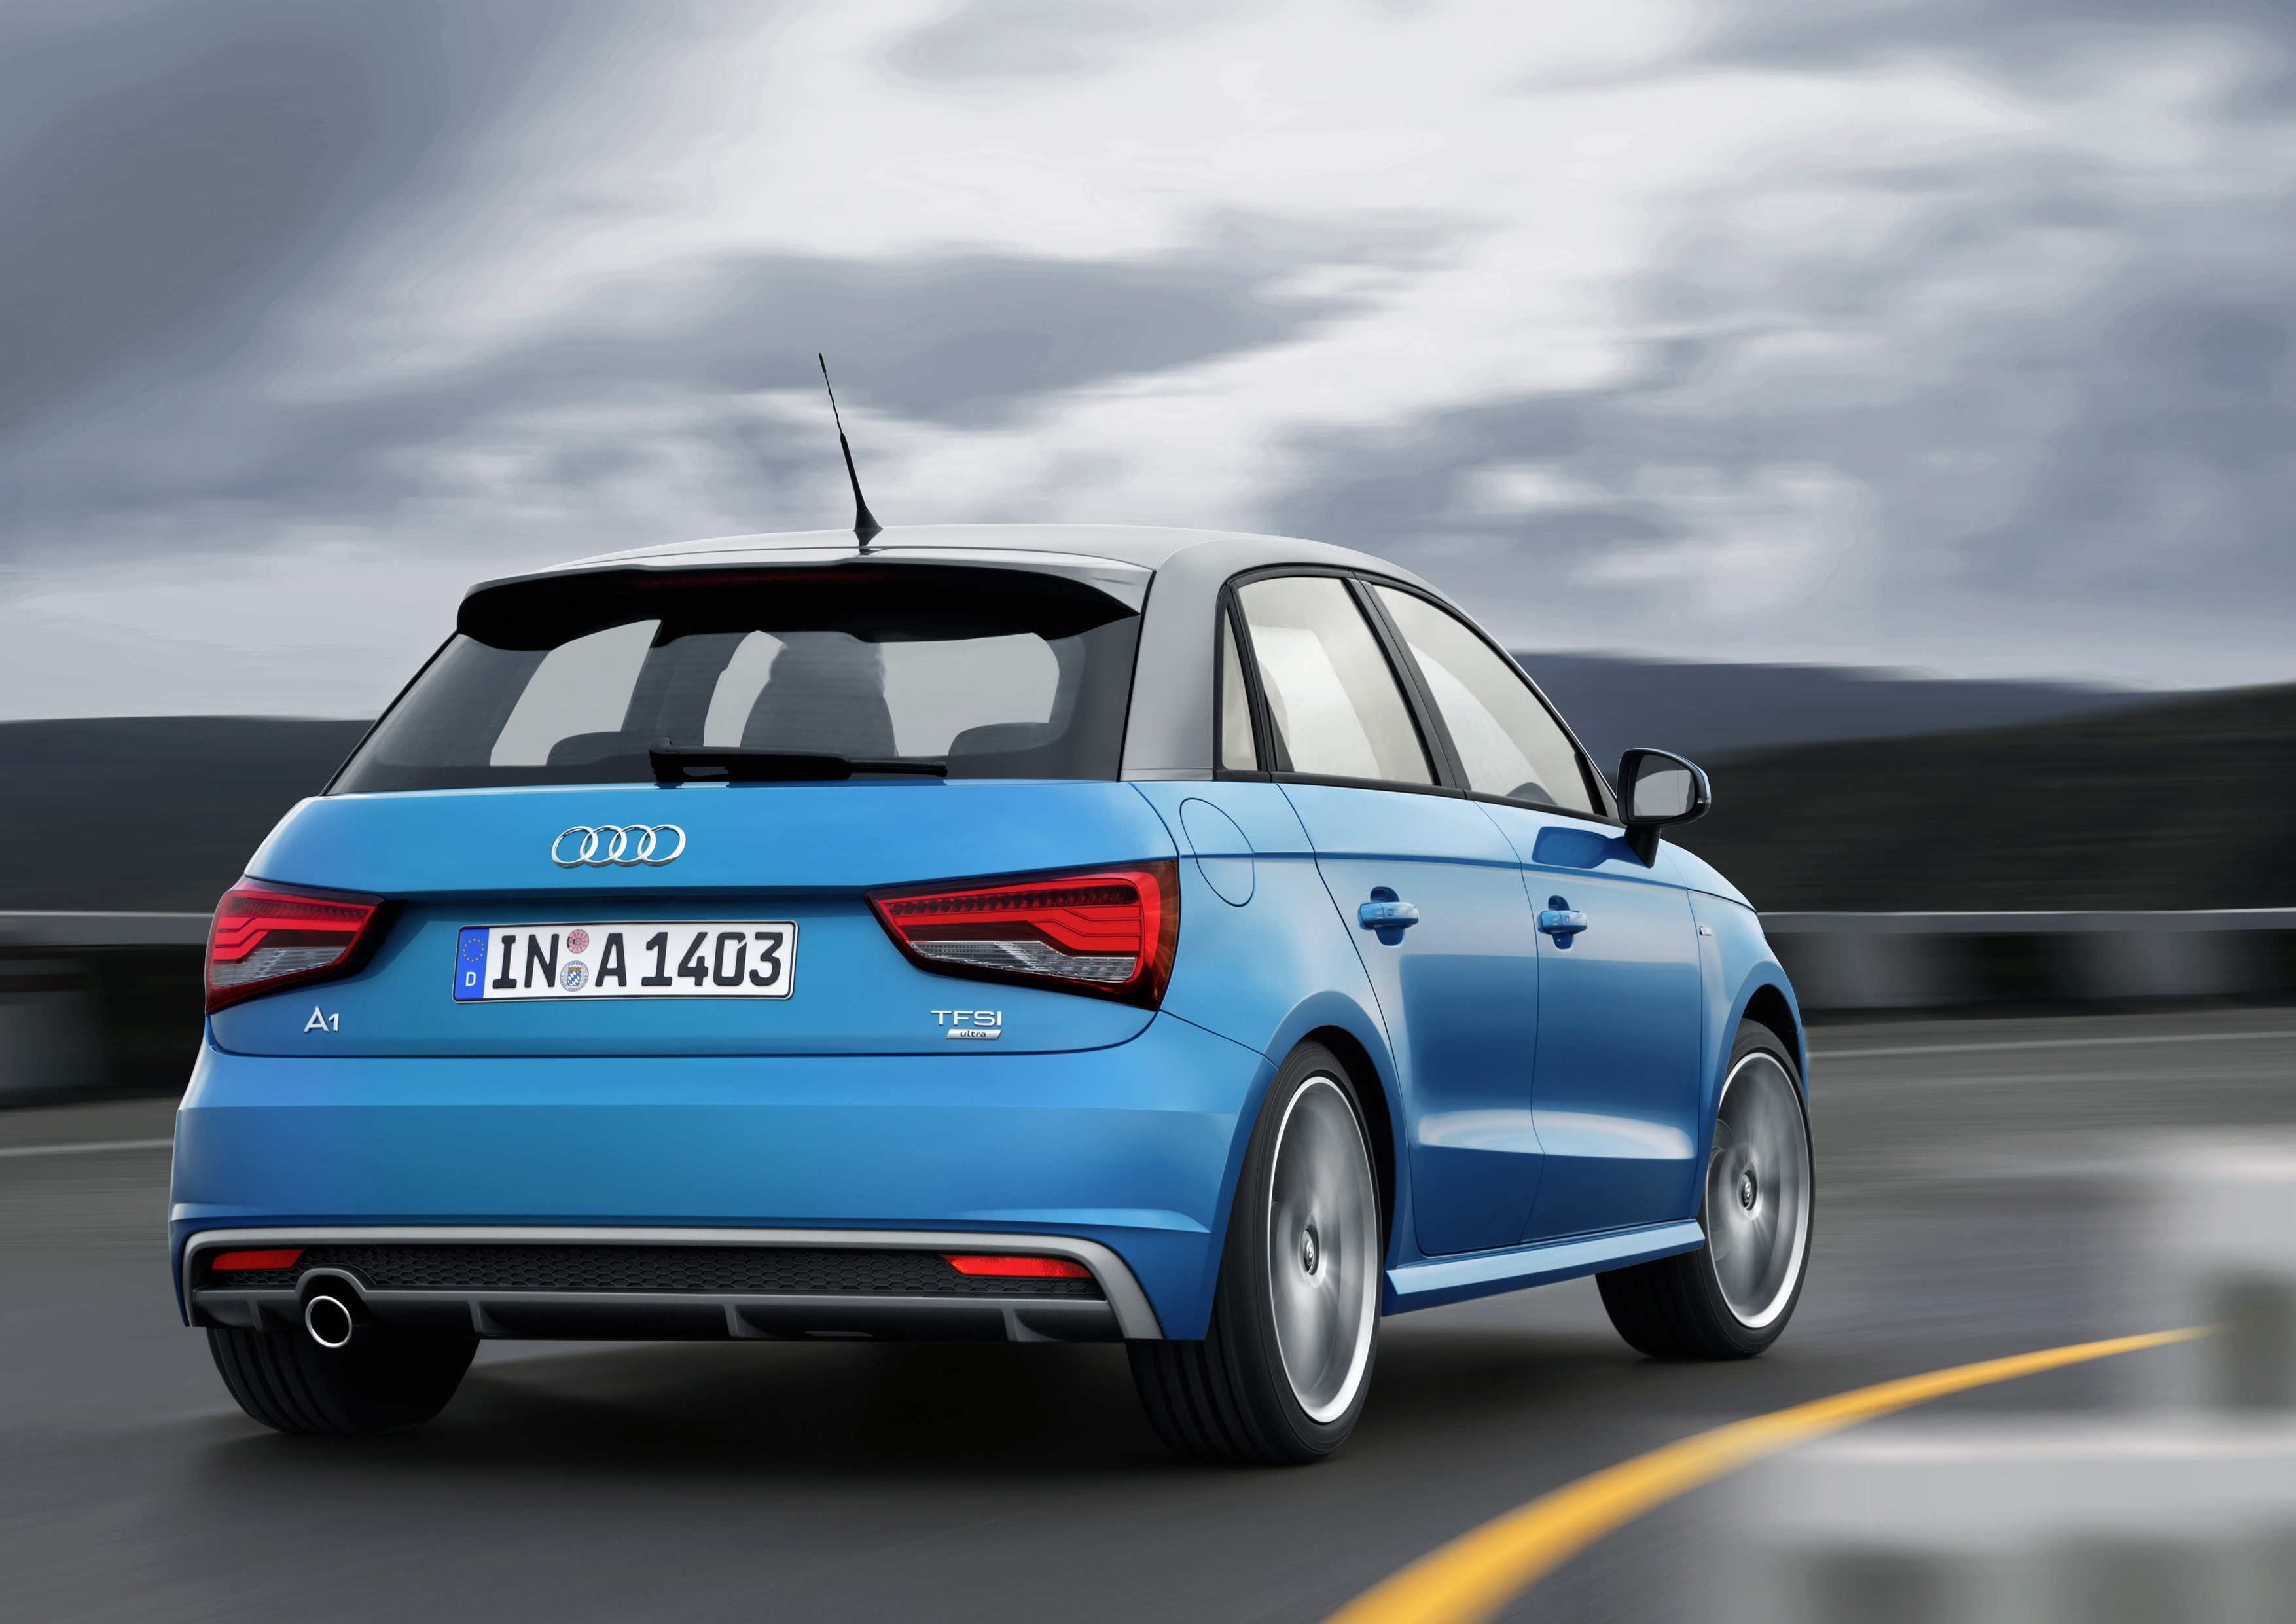 Audi A1 Wallpapers Hd